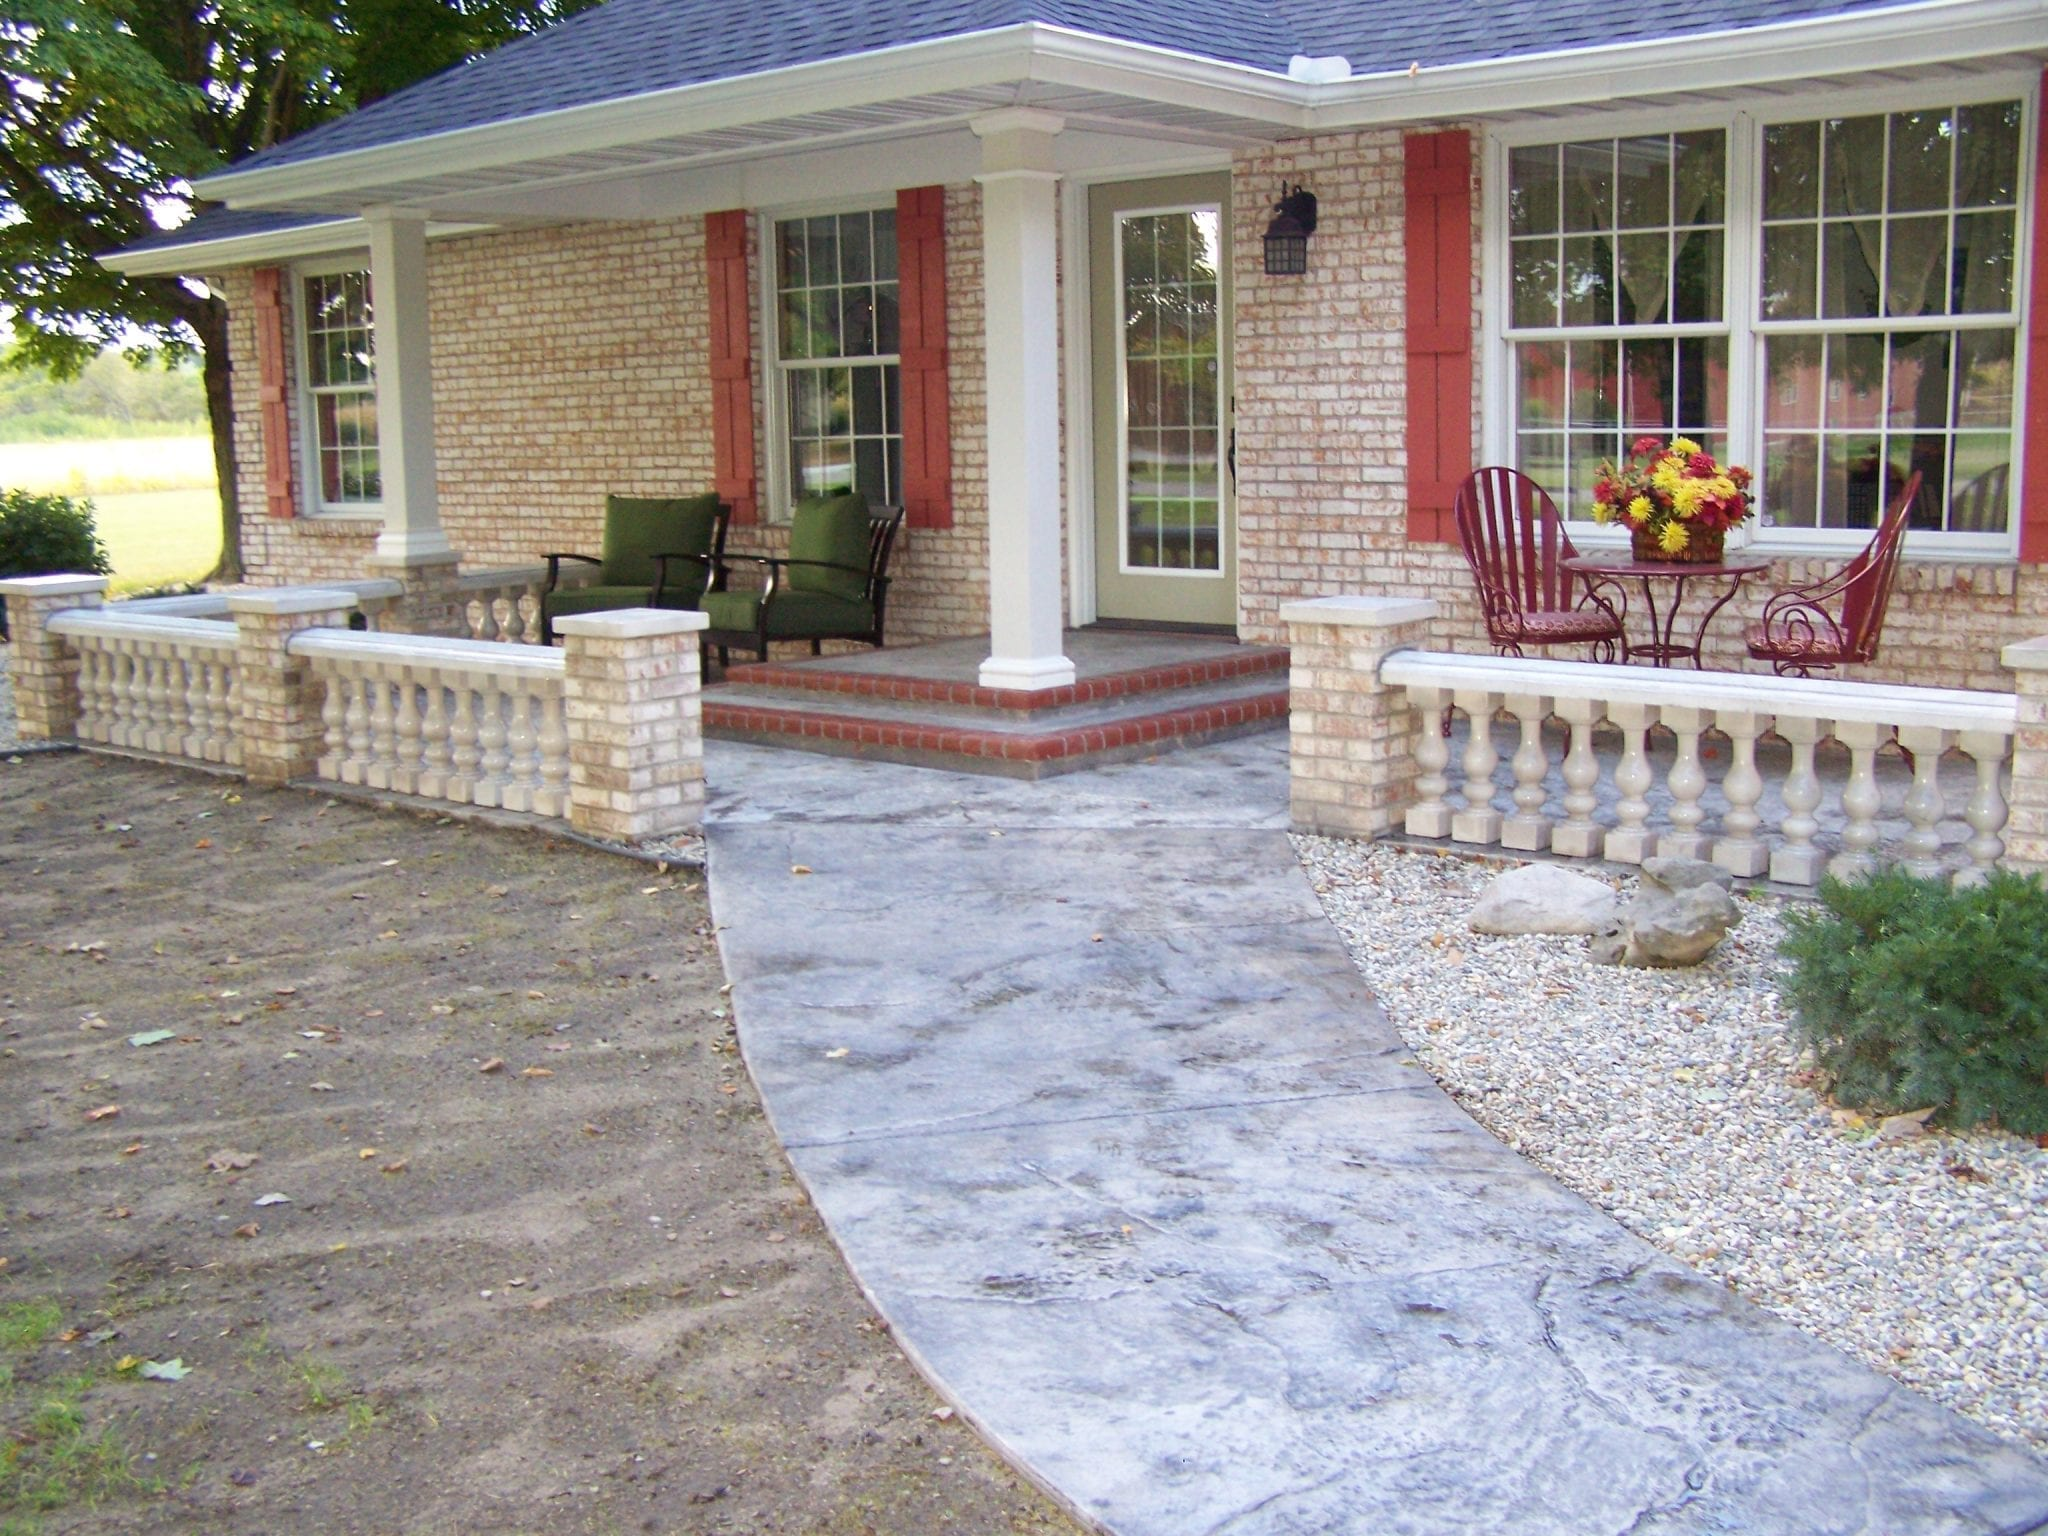 Concrete Front Porch Makeover Baluster Floor Designs - Front porch makeover ideas